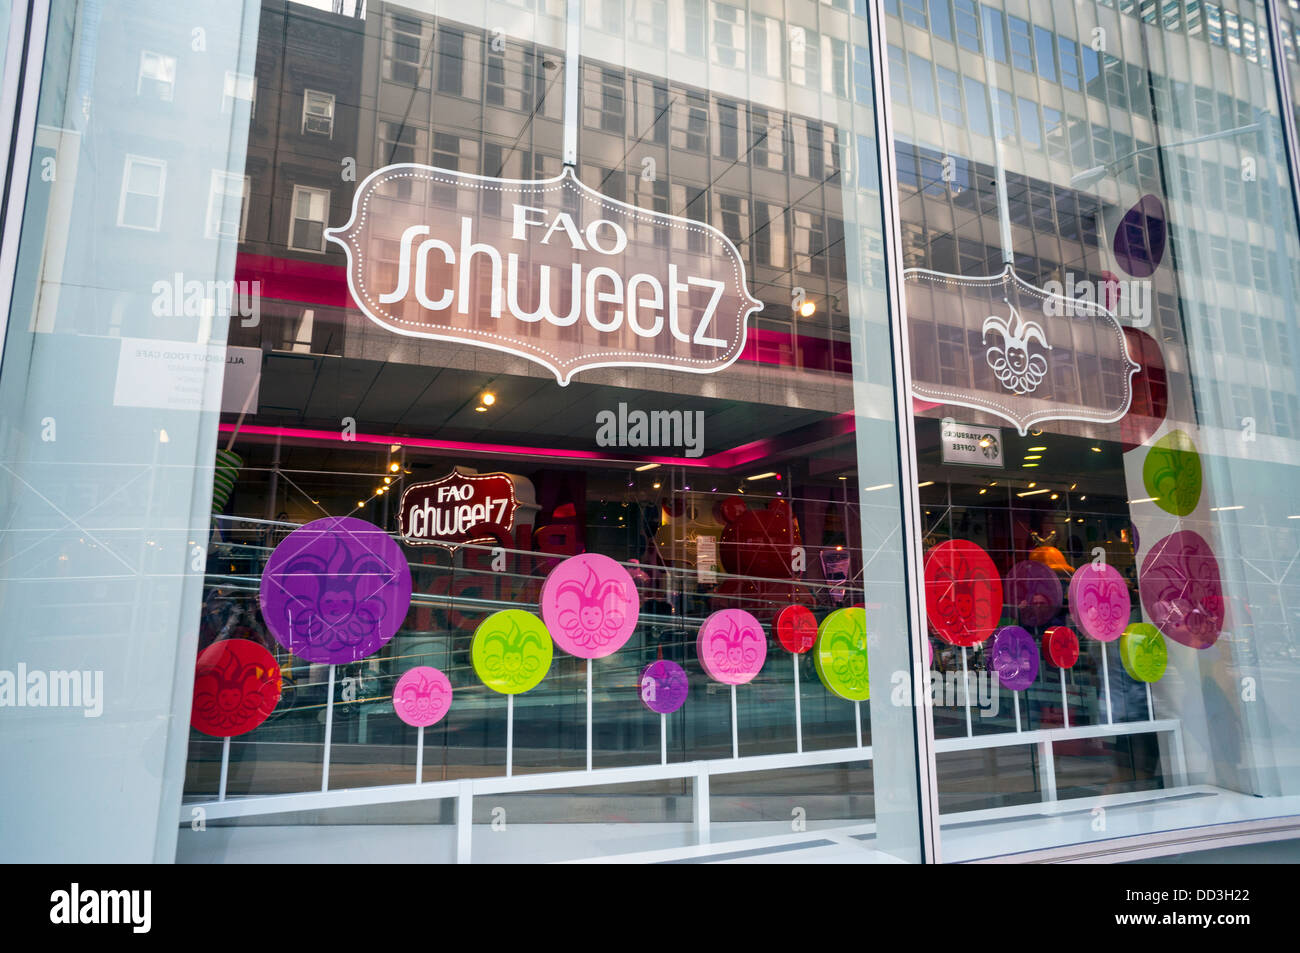 FAO Schwarz flagship store in New York City - Stock Image